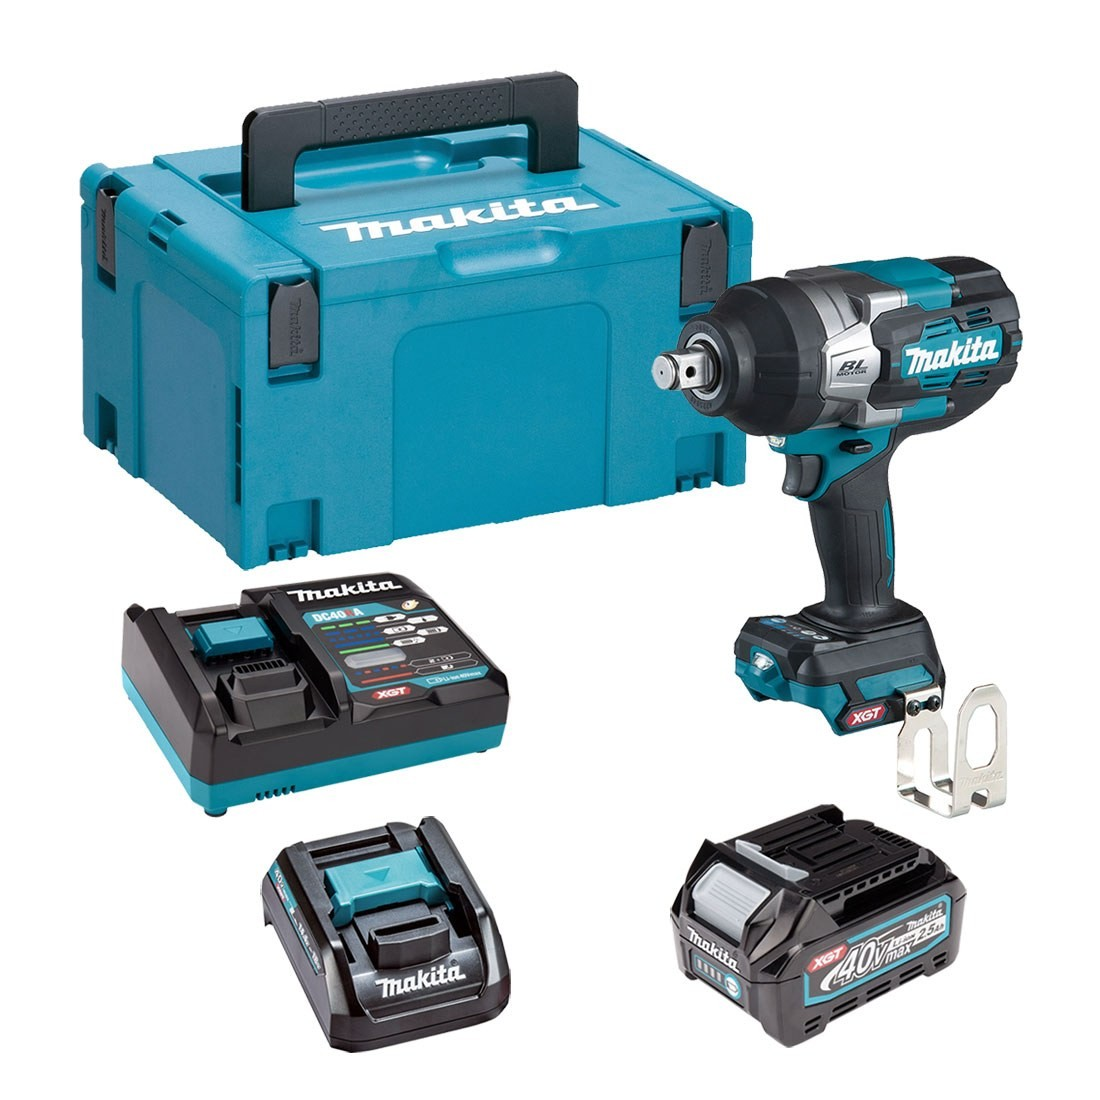 Makita TW001GD102 40V Max XGT Brushless Impact Wrench with 1 x 2.5Ah Battery & Charger